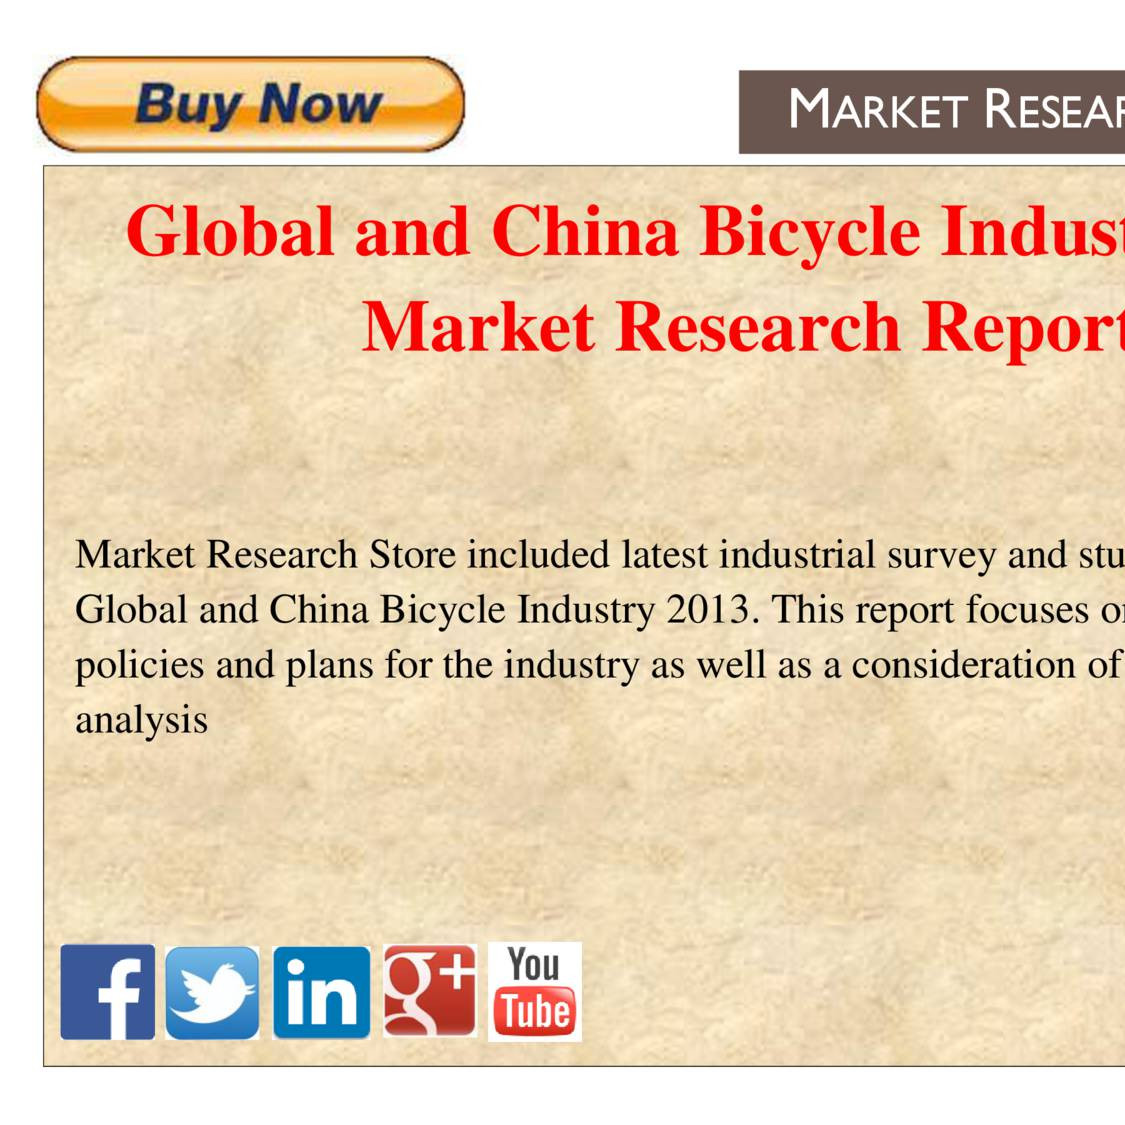 bbc bicycle market analysis Global bicycle helmet market report 2017 with the slowdown in world economic growth, the bicycle helmet industry has also suffered a certain impact, but still maintained a relatively.